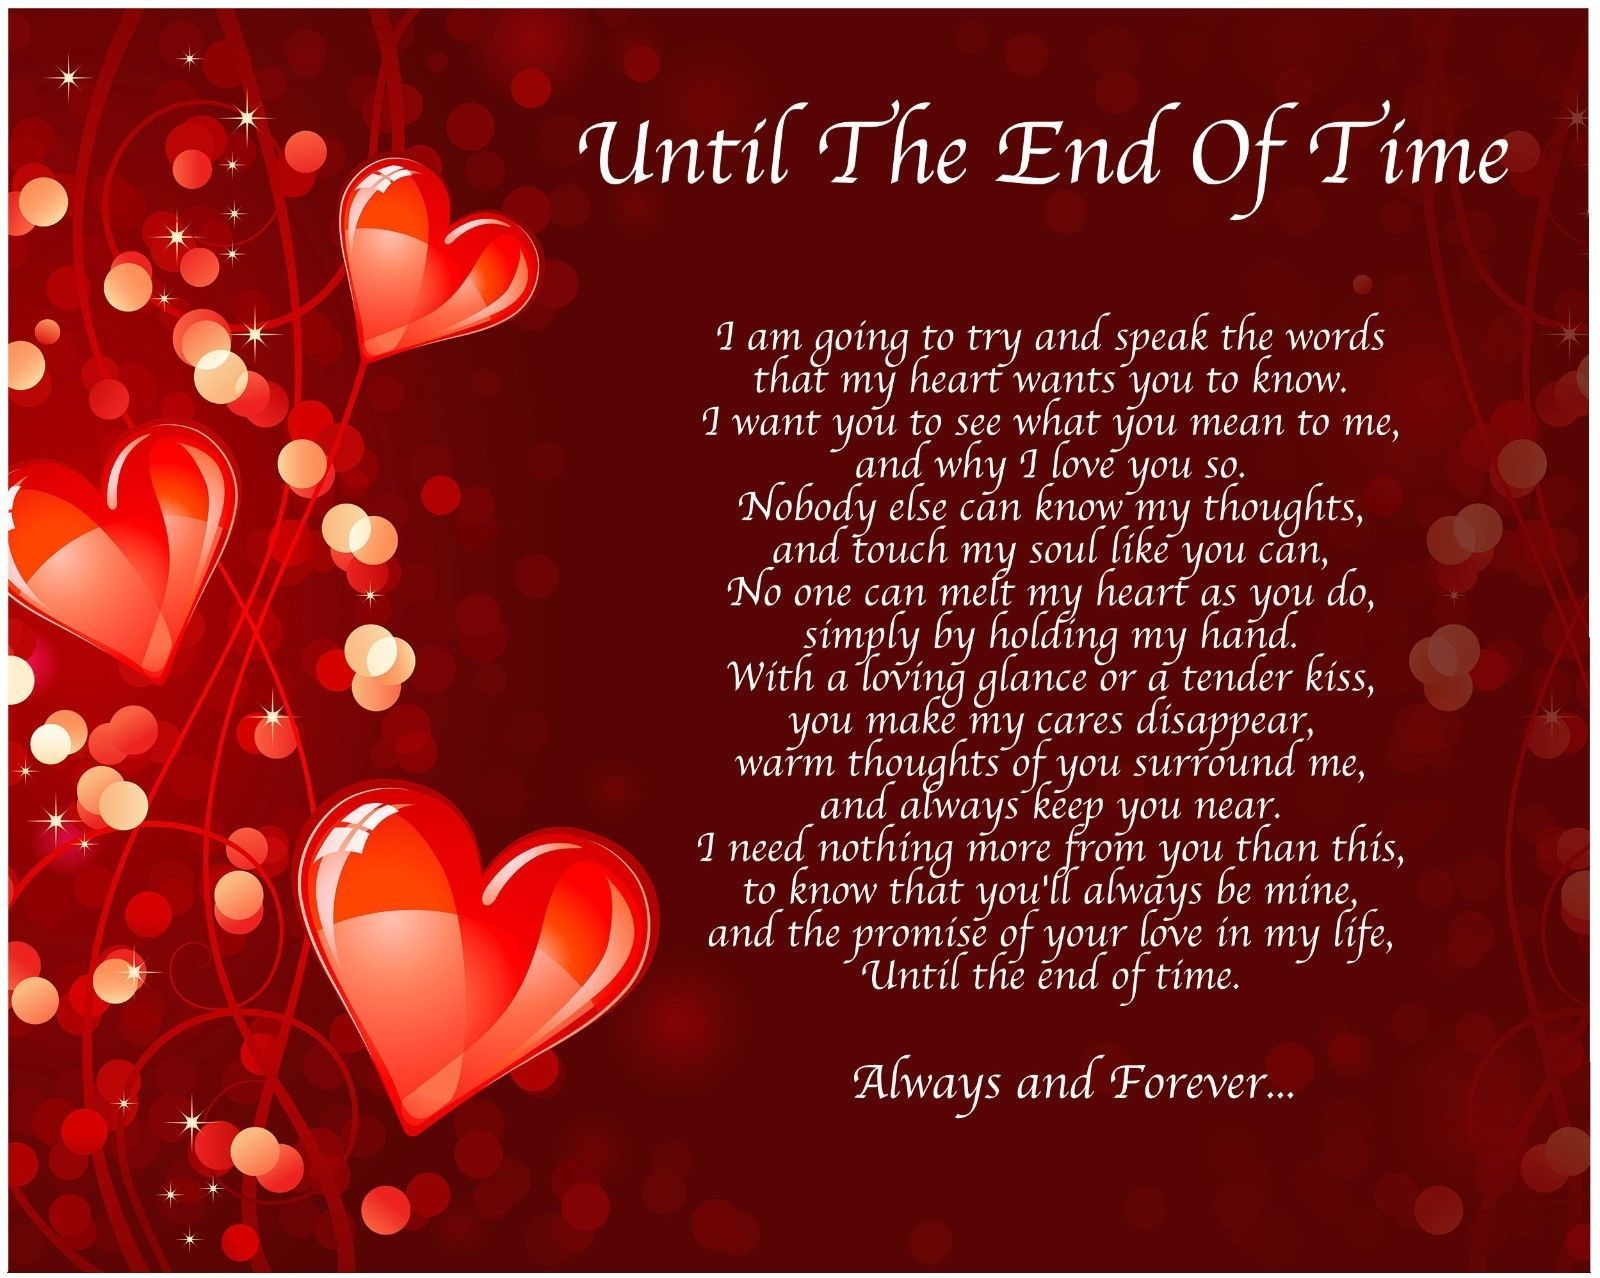 Personalized LOVE Poem GIFT  The PERFECT Valentine/'s Day Gift for HIM or HER